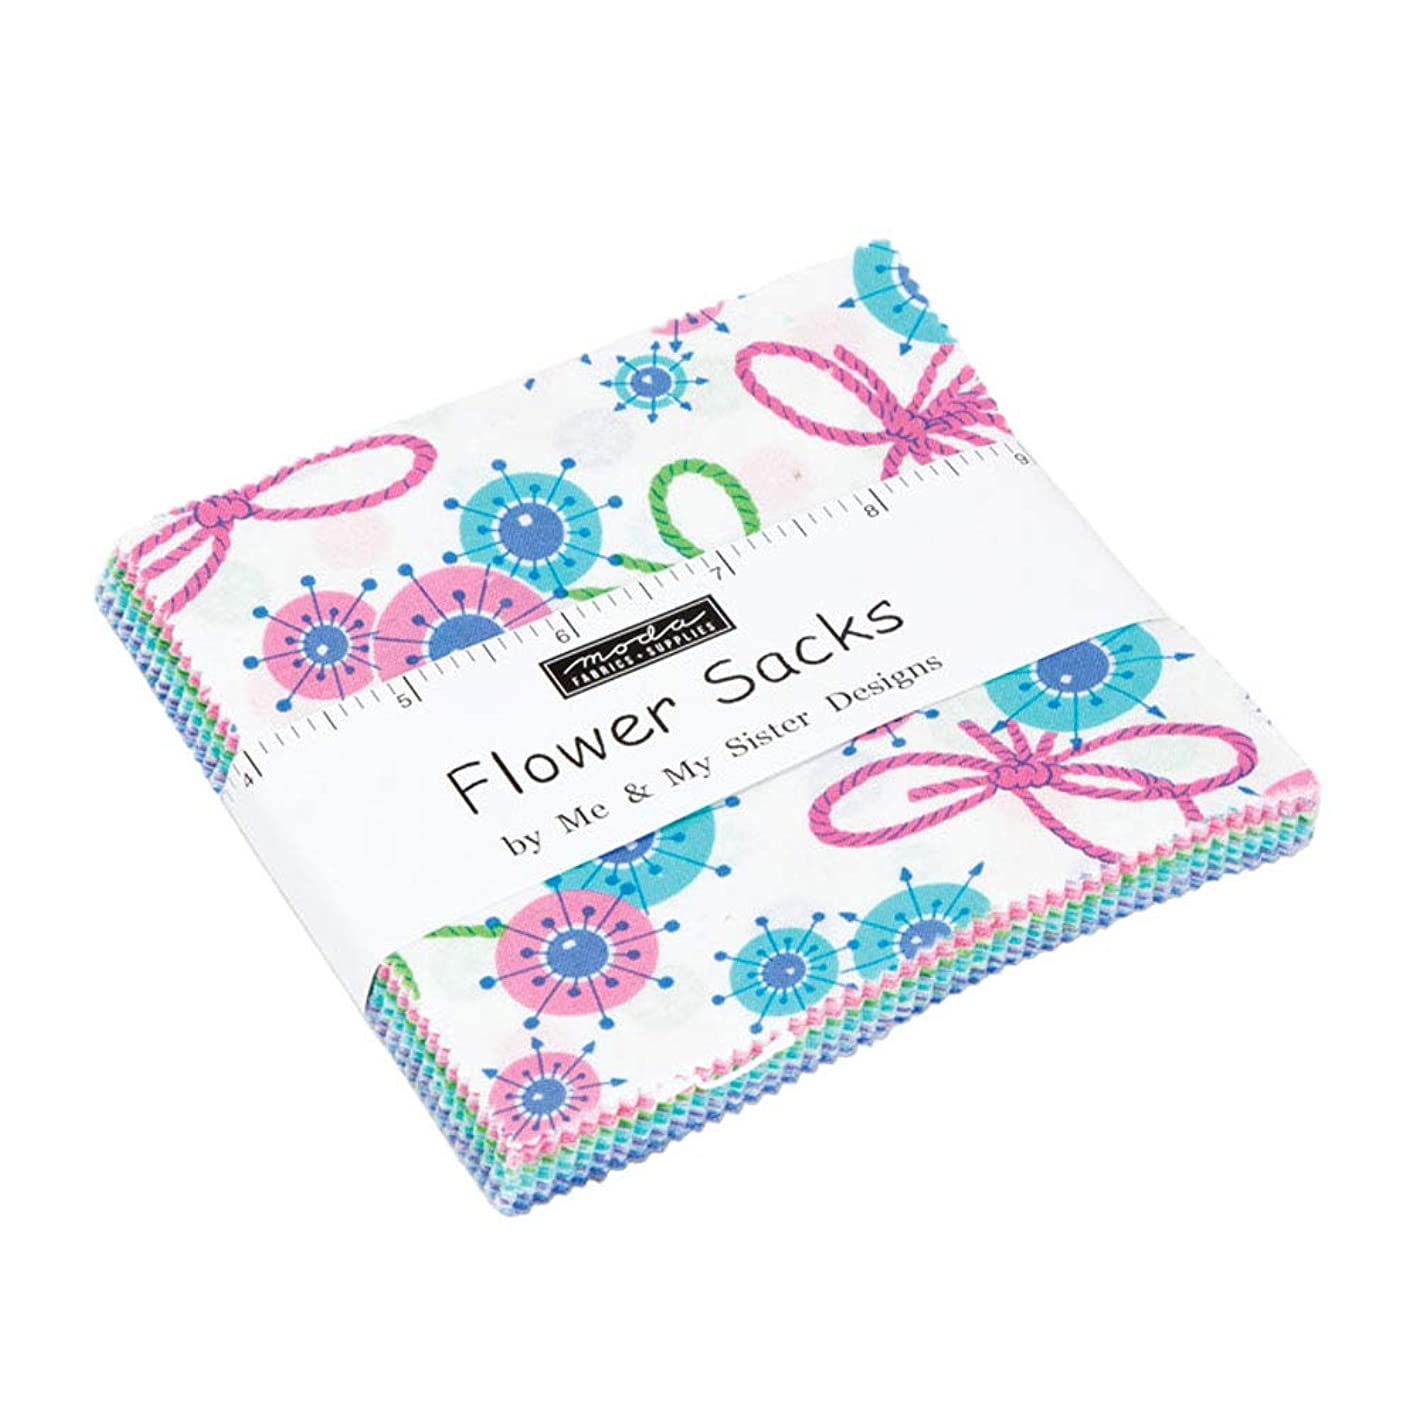 Flower Sacks Charm Pack by Me & My Sister Designs; 42-5 Inch Precut Fabric Quilt Squares xopaxsvpino234